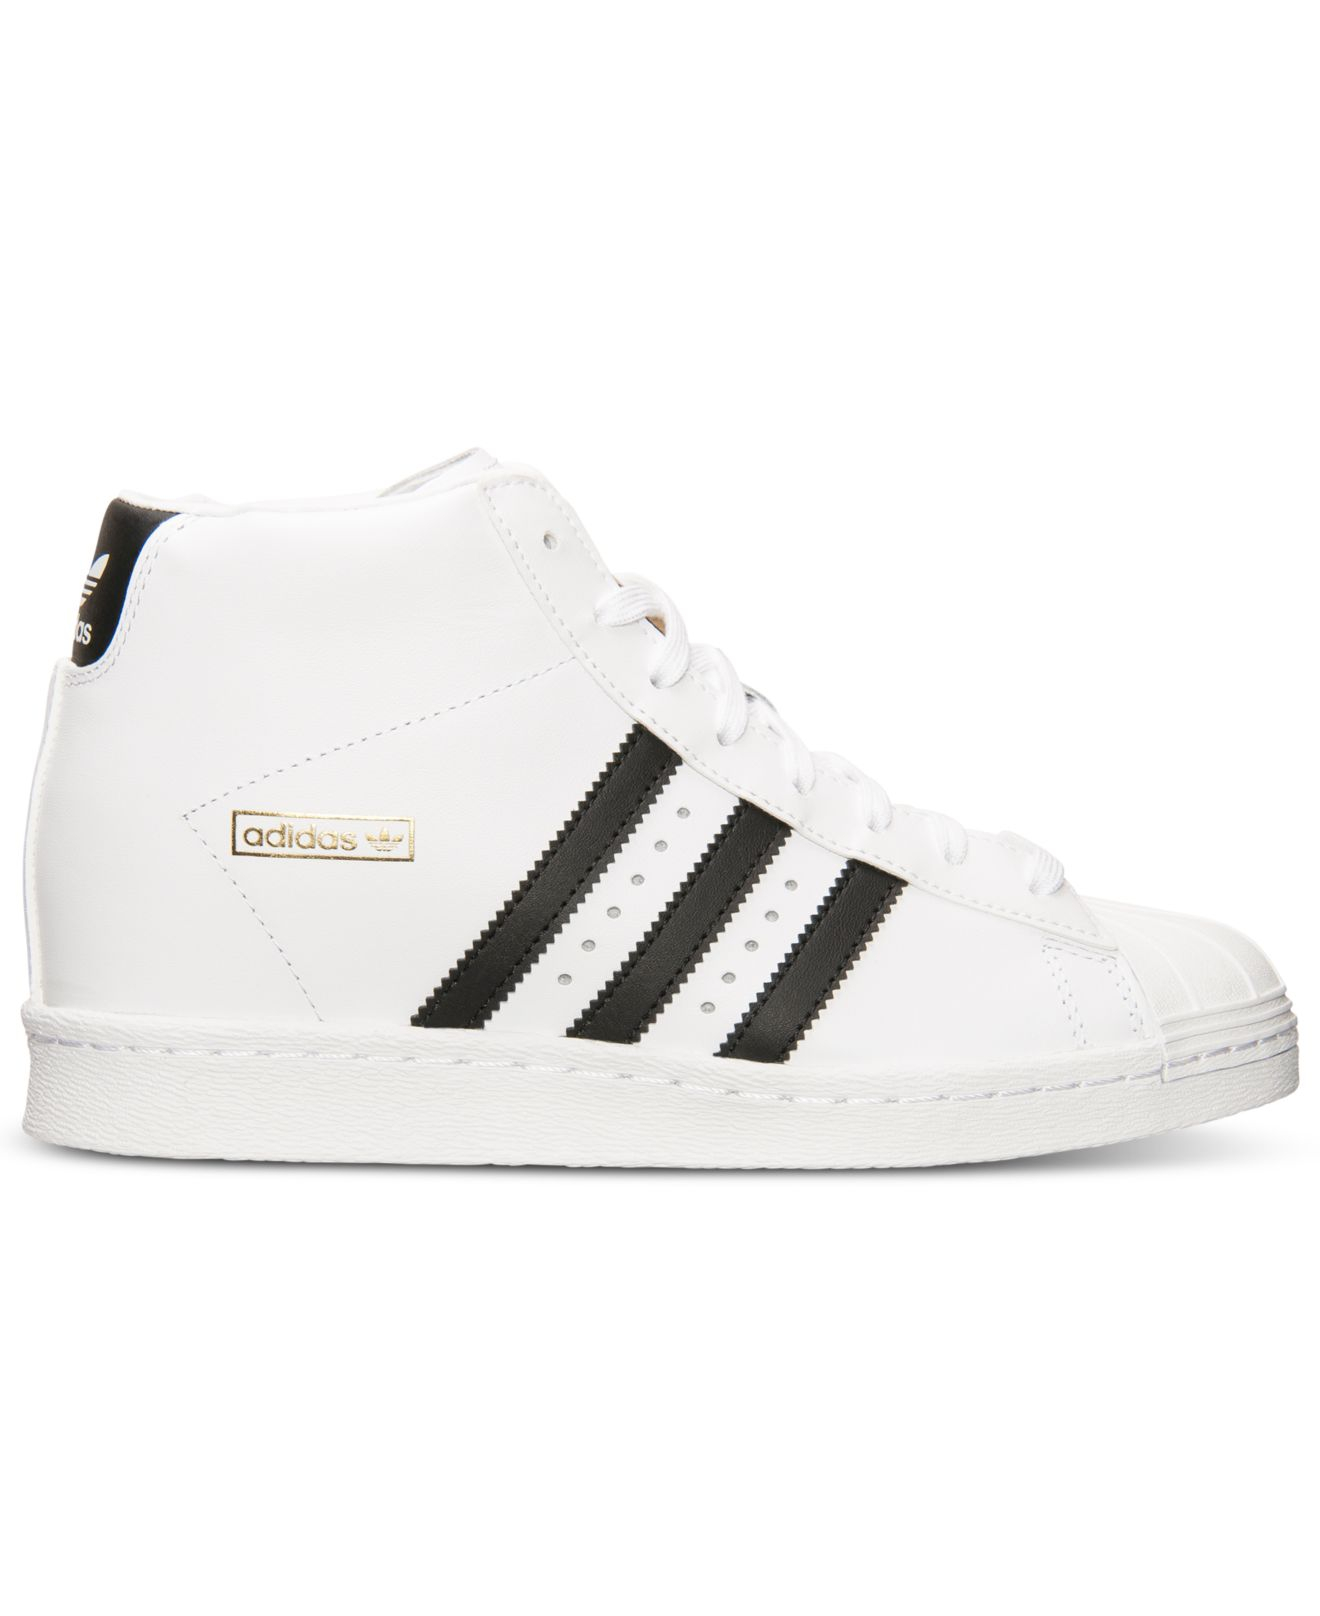 50a48bfd1 Lyst - adidas Women S Superstar Up Casual Sneakers From Finish Line ...